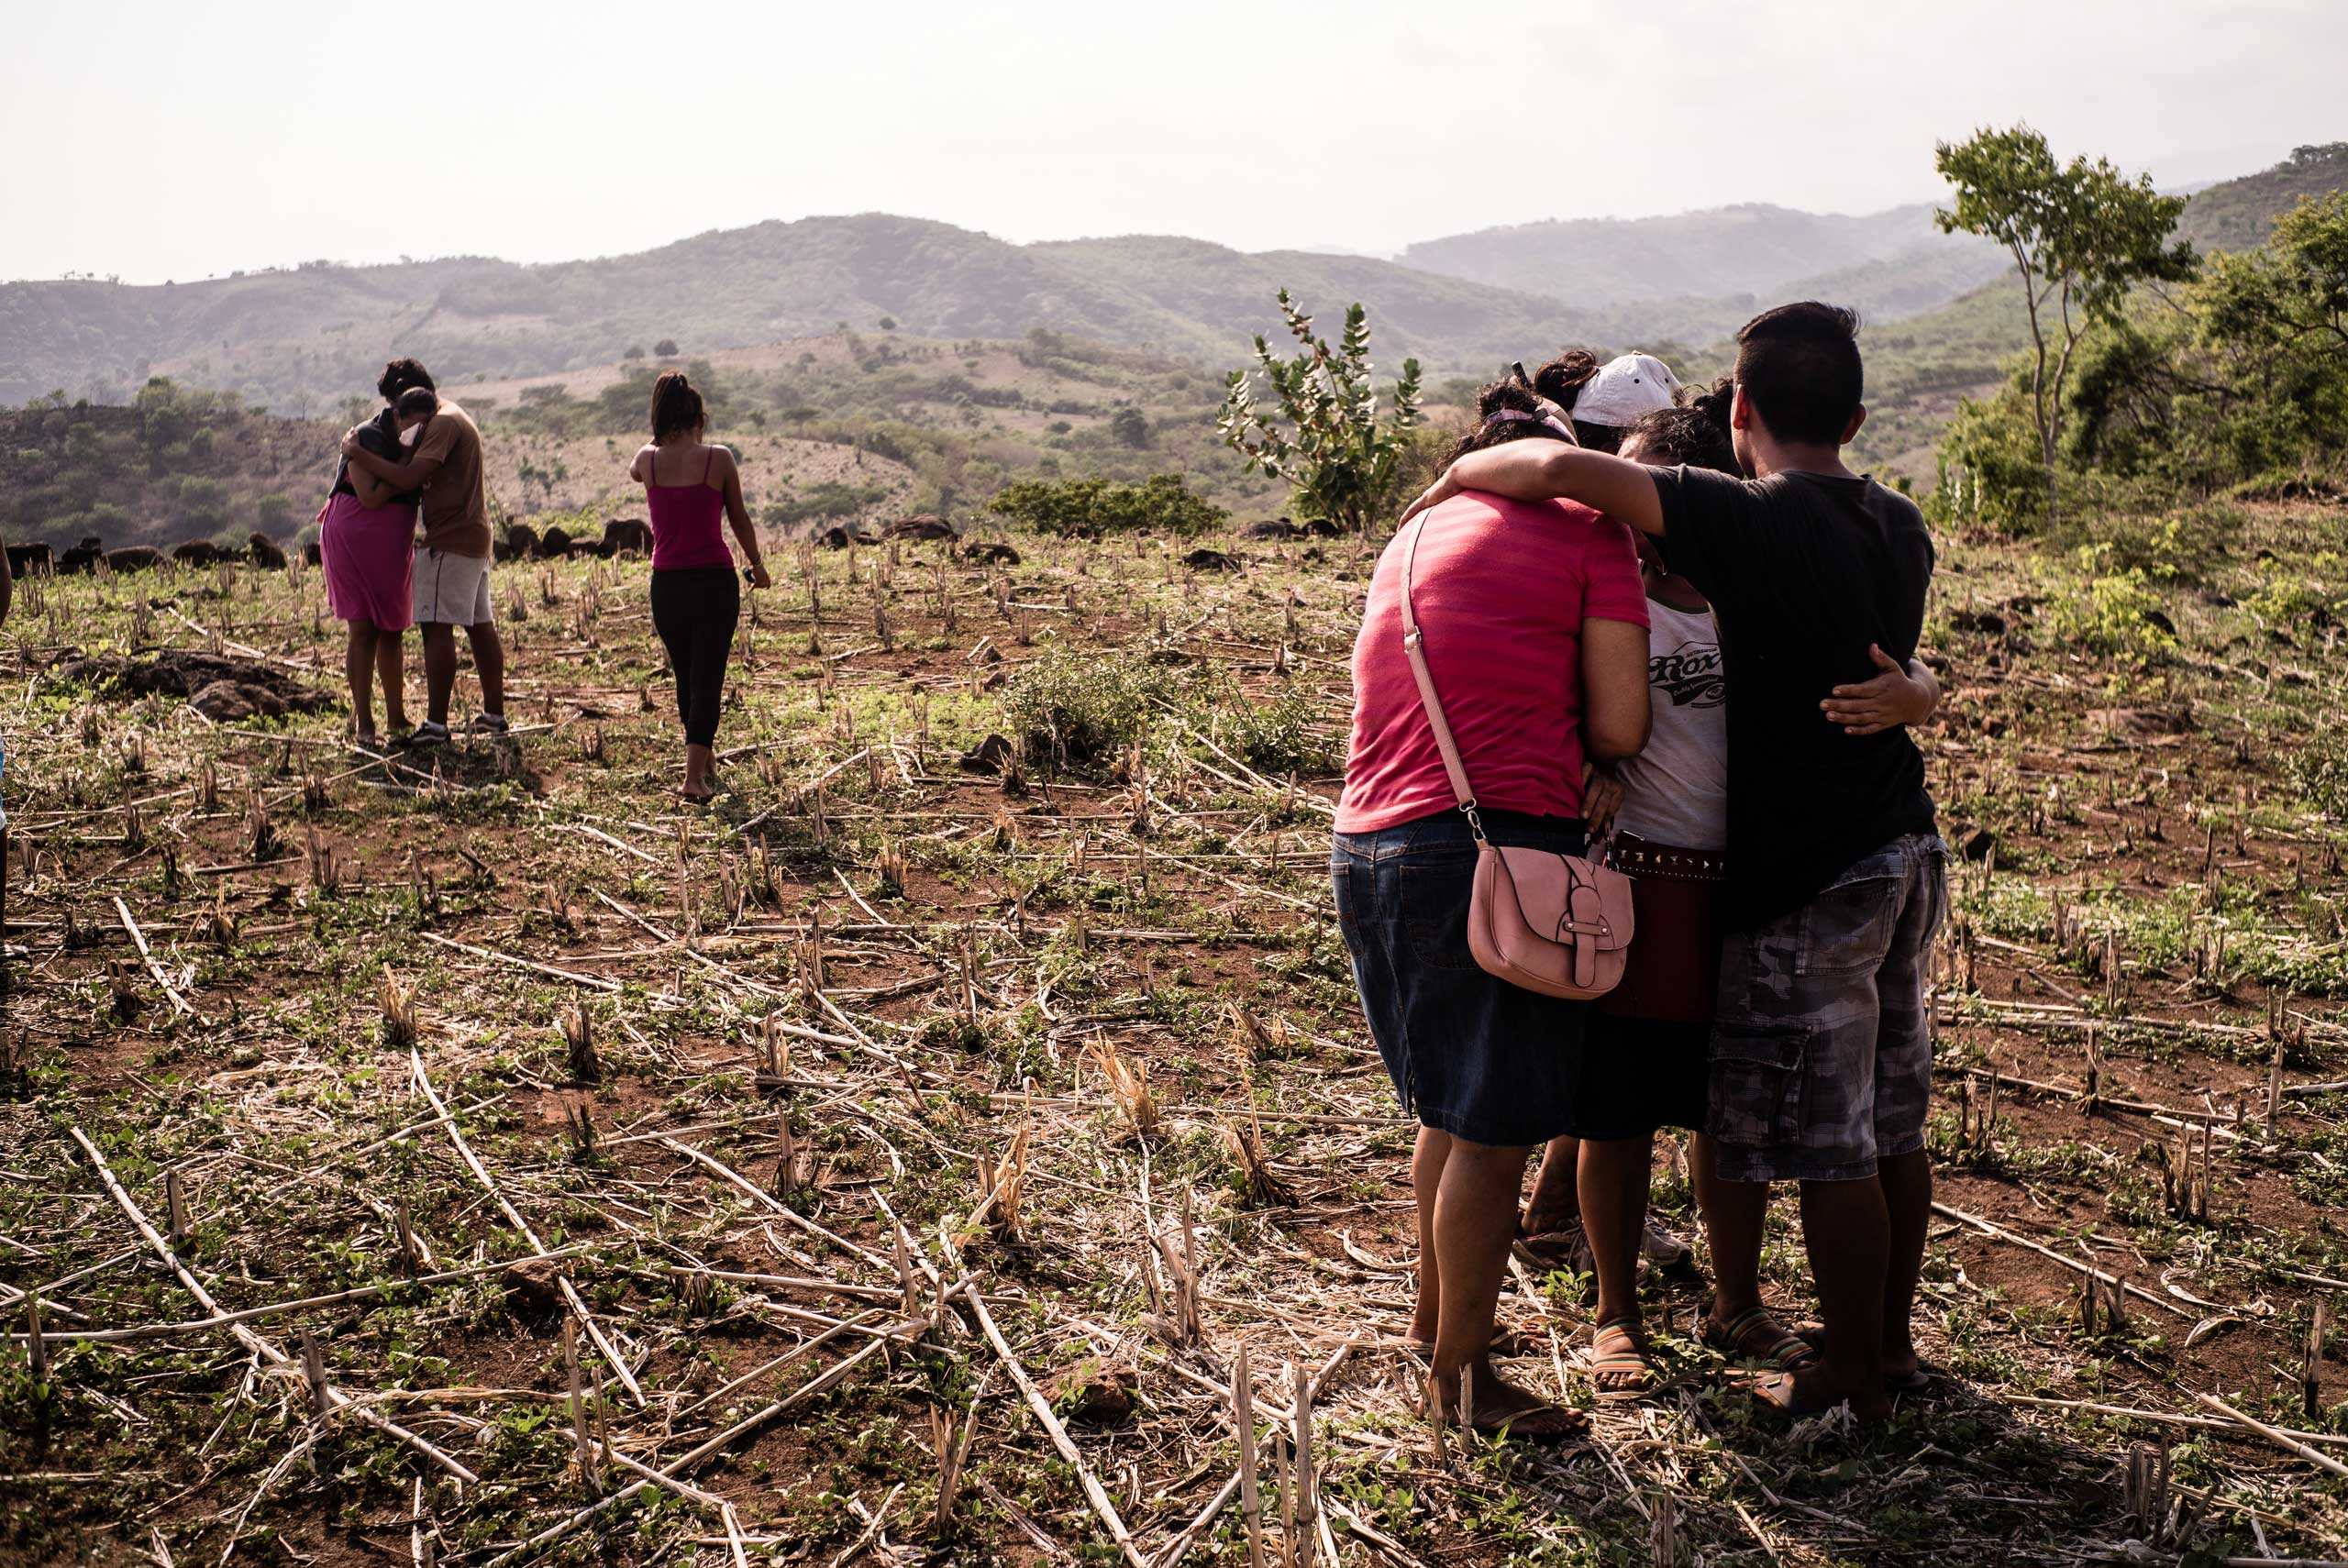 Relatives of a man believed to have been killed                                and buried by a gang in the town of La Libertad                                wait for officials to exhume his body, on May 28, 2015.